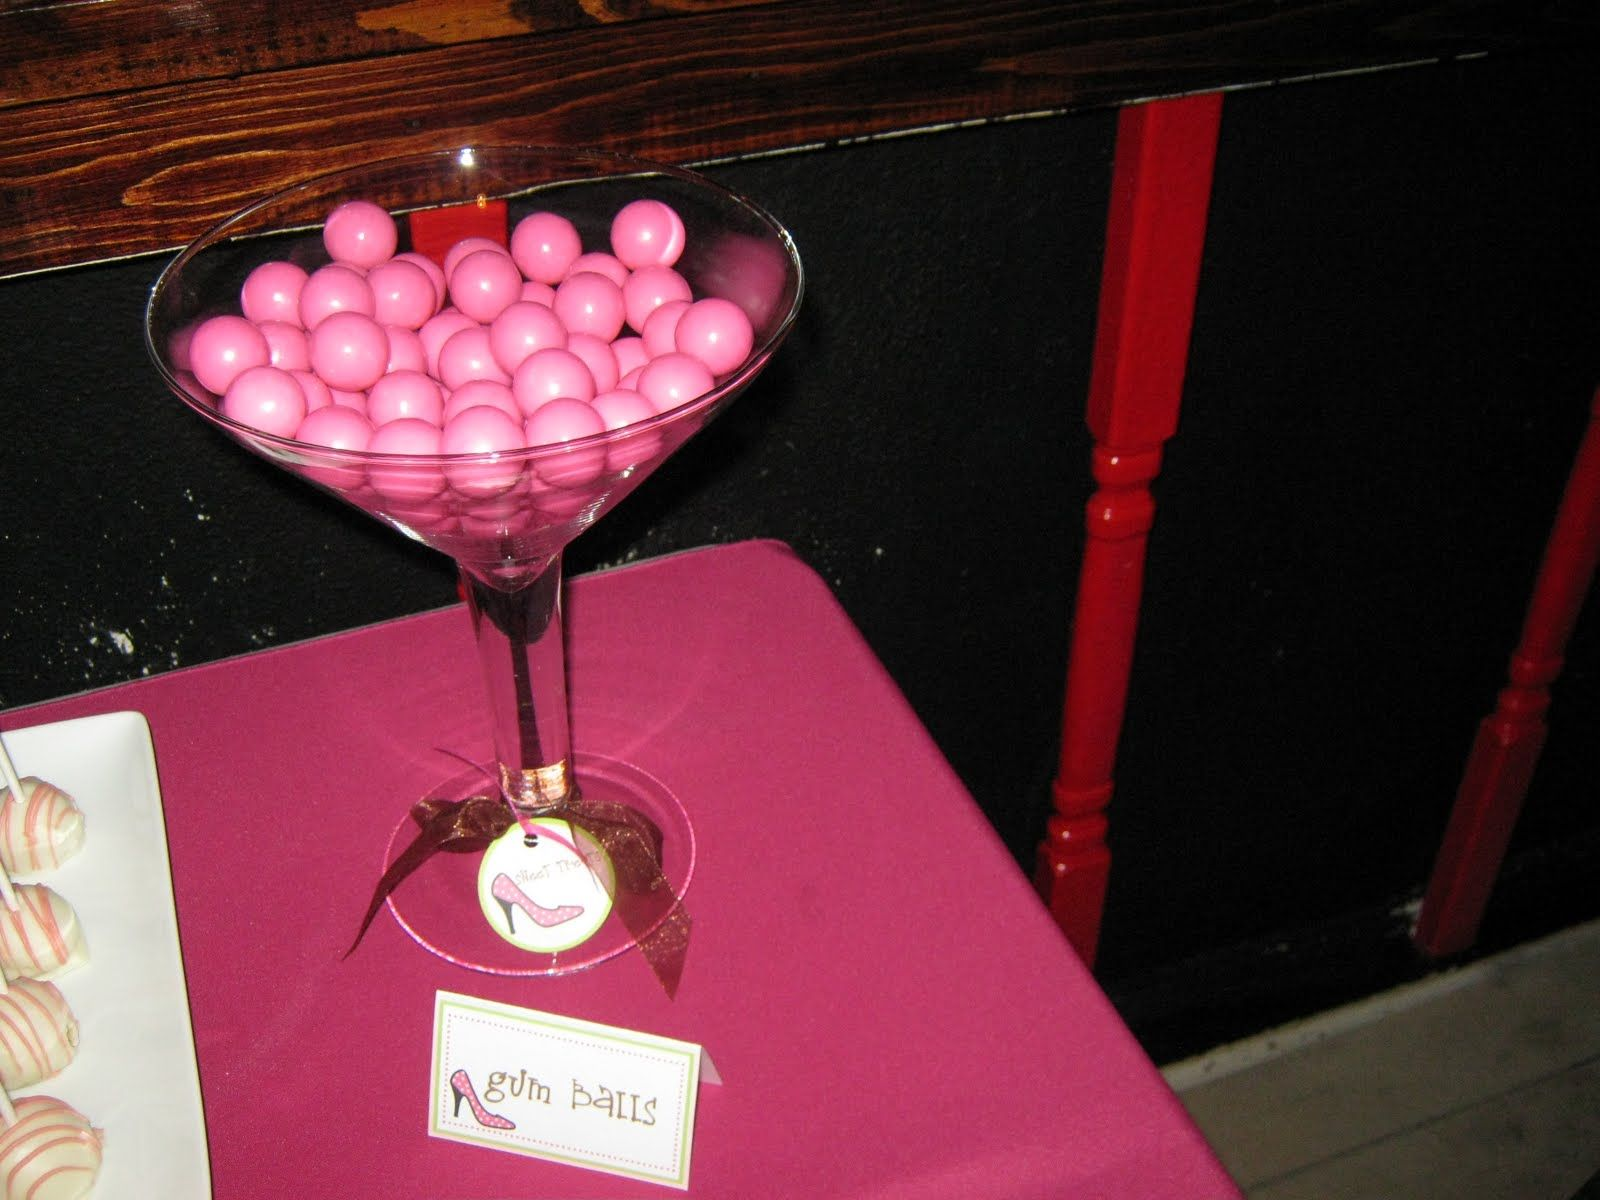 Use Margarita Or Oversized Martini Gles To Hold Candy For The Dessert Bar Cookies Cake Pops Oreo Truffles Cupcakes